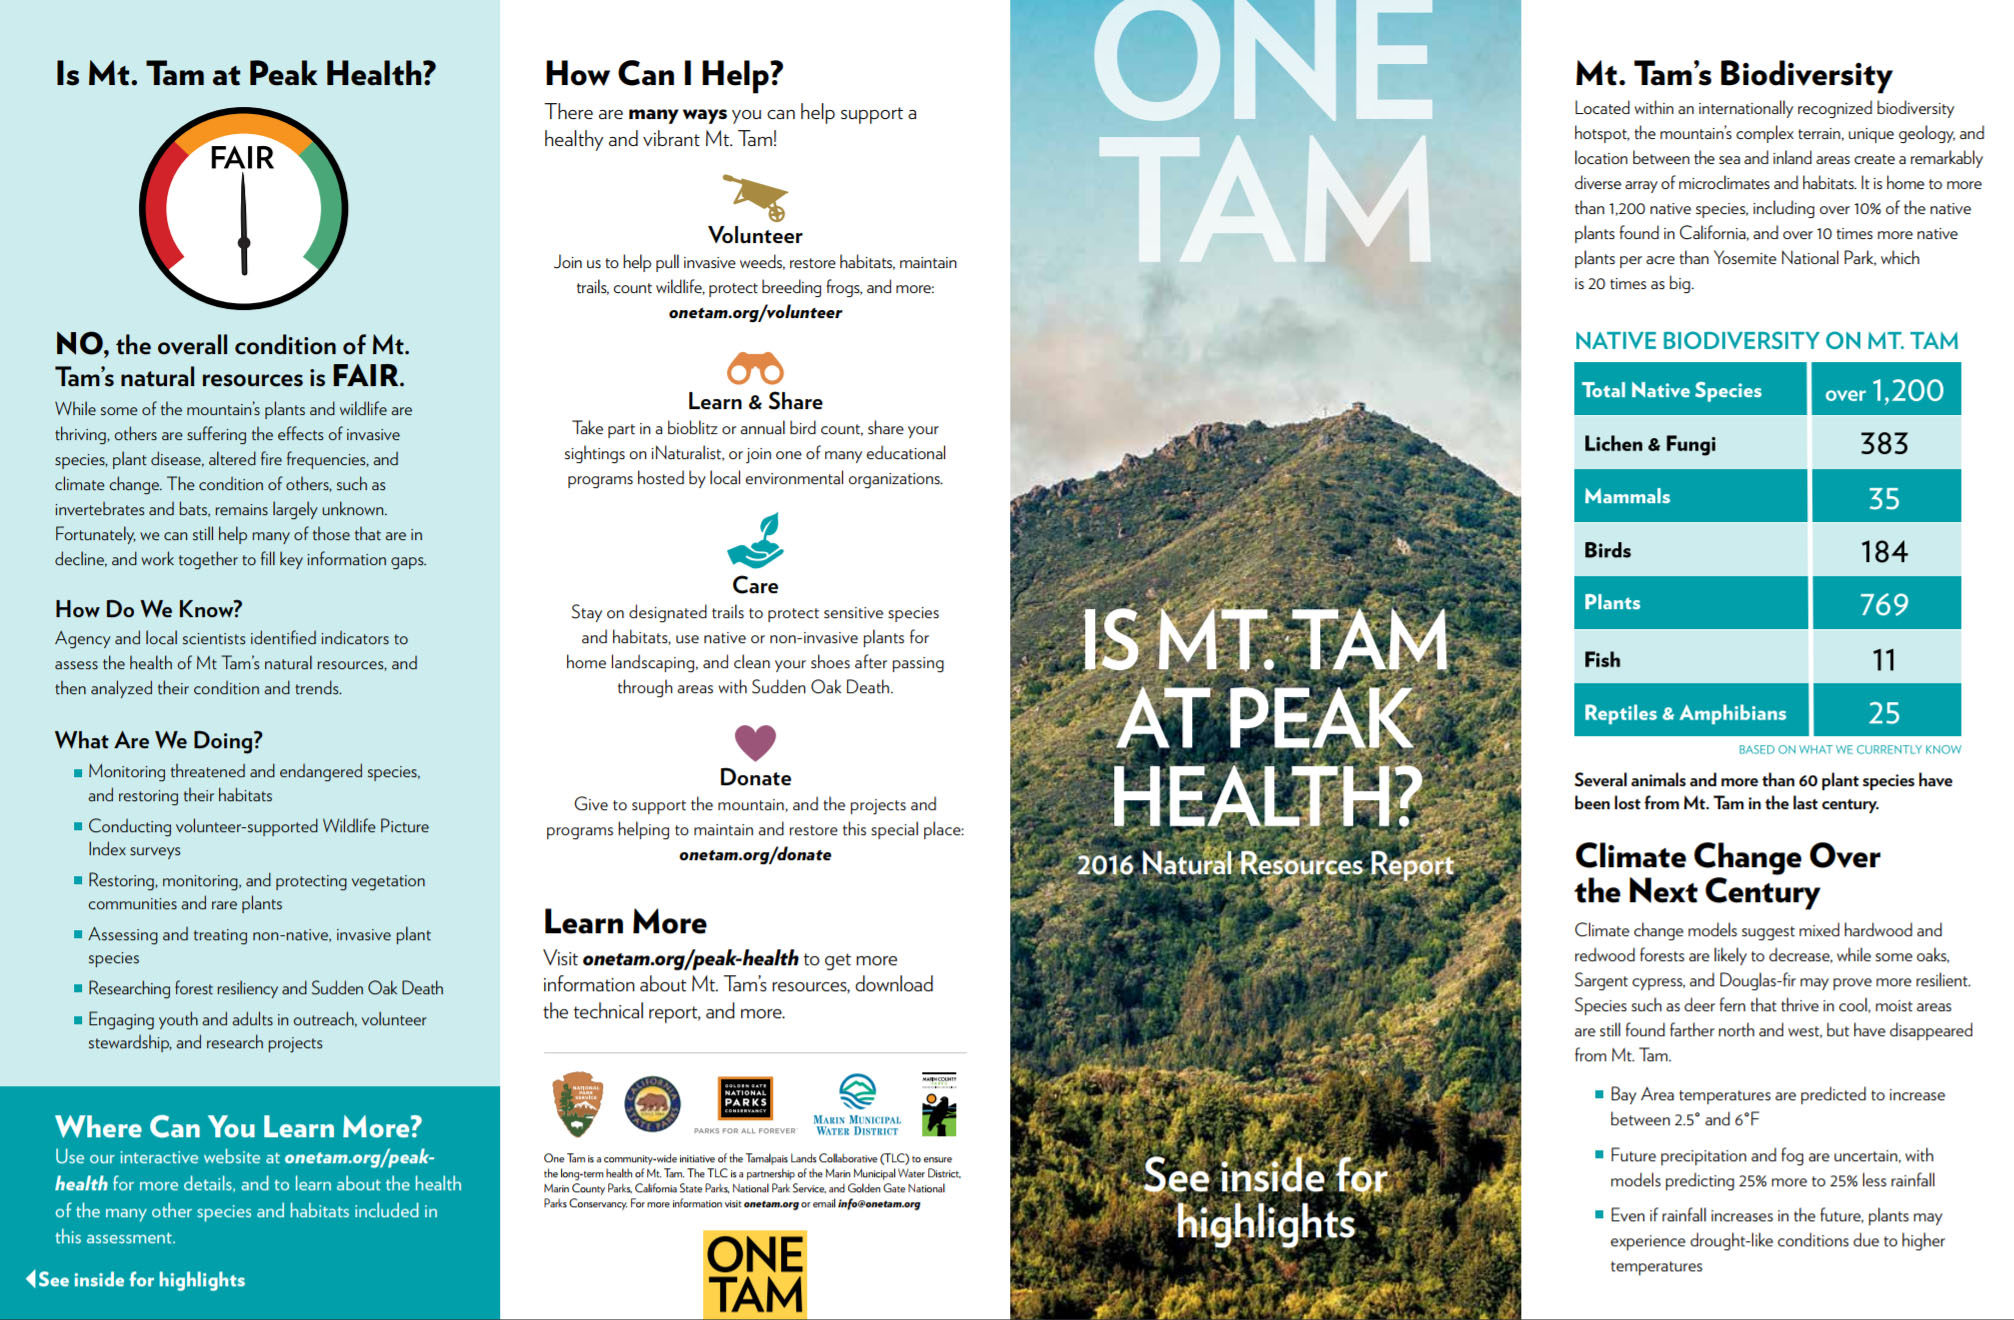 'Is Mt. Tam at Peak Health' brochure screenshot